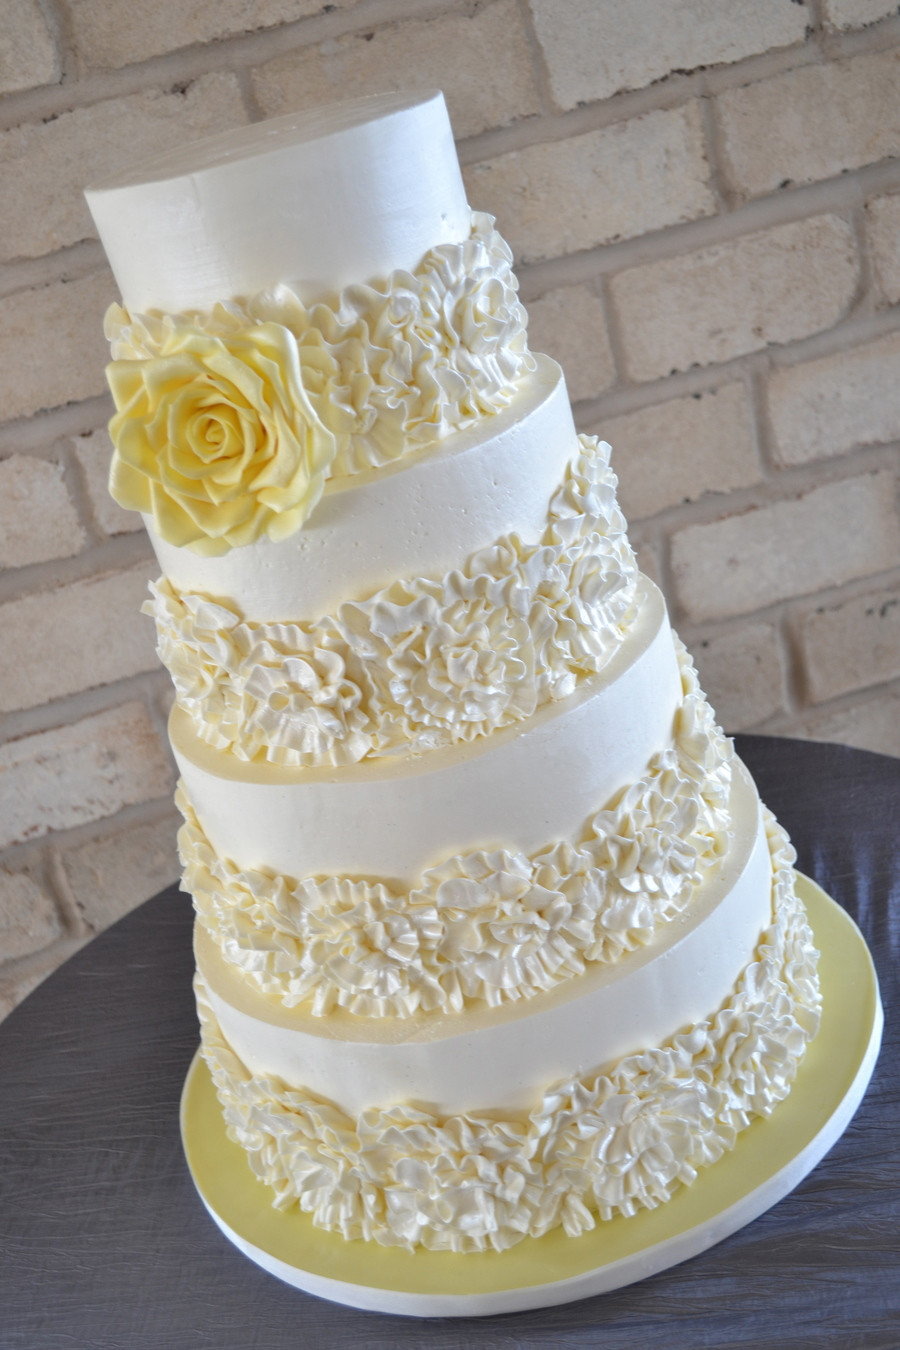 Ruffles Wedding Cakes  Buttercream Ruffles Wedding Cake CakeCentral